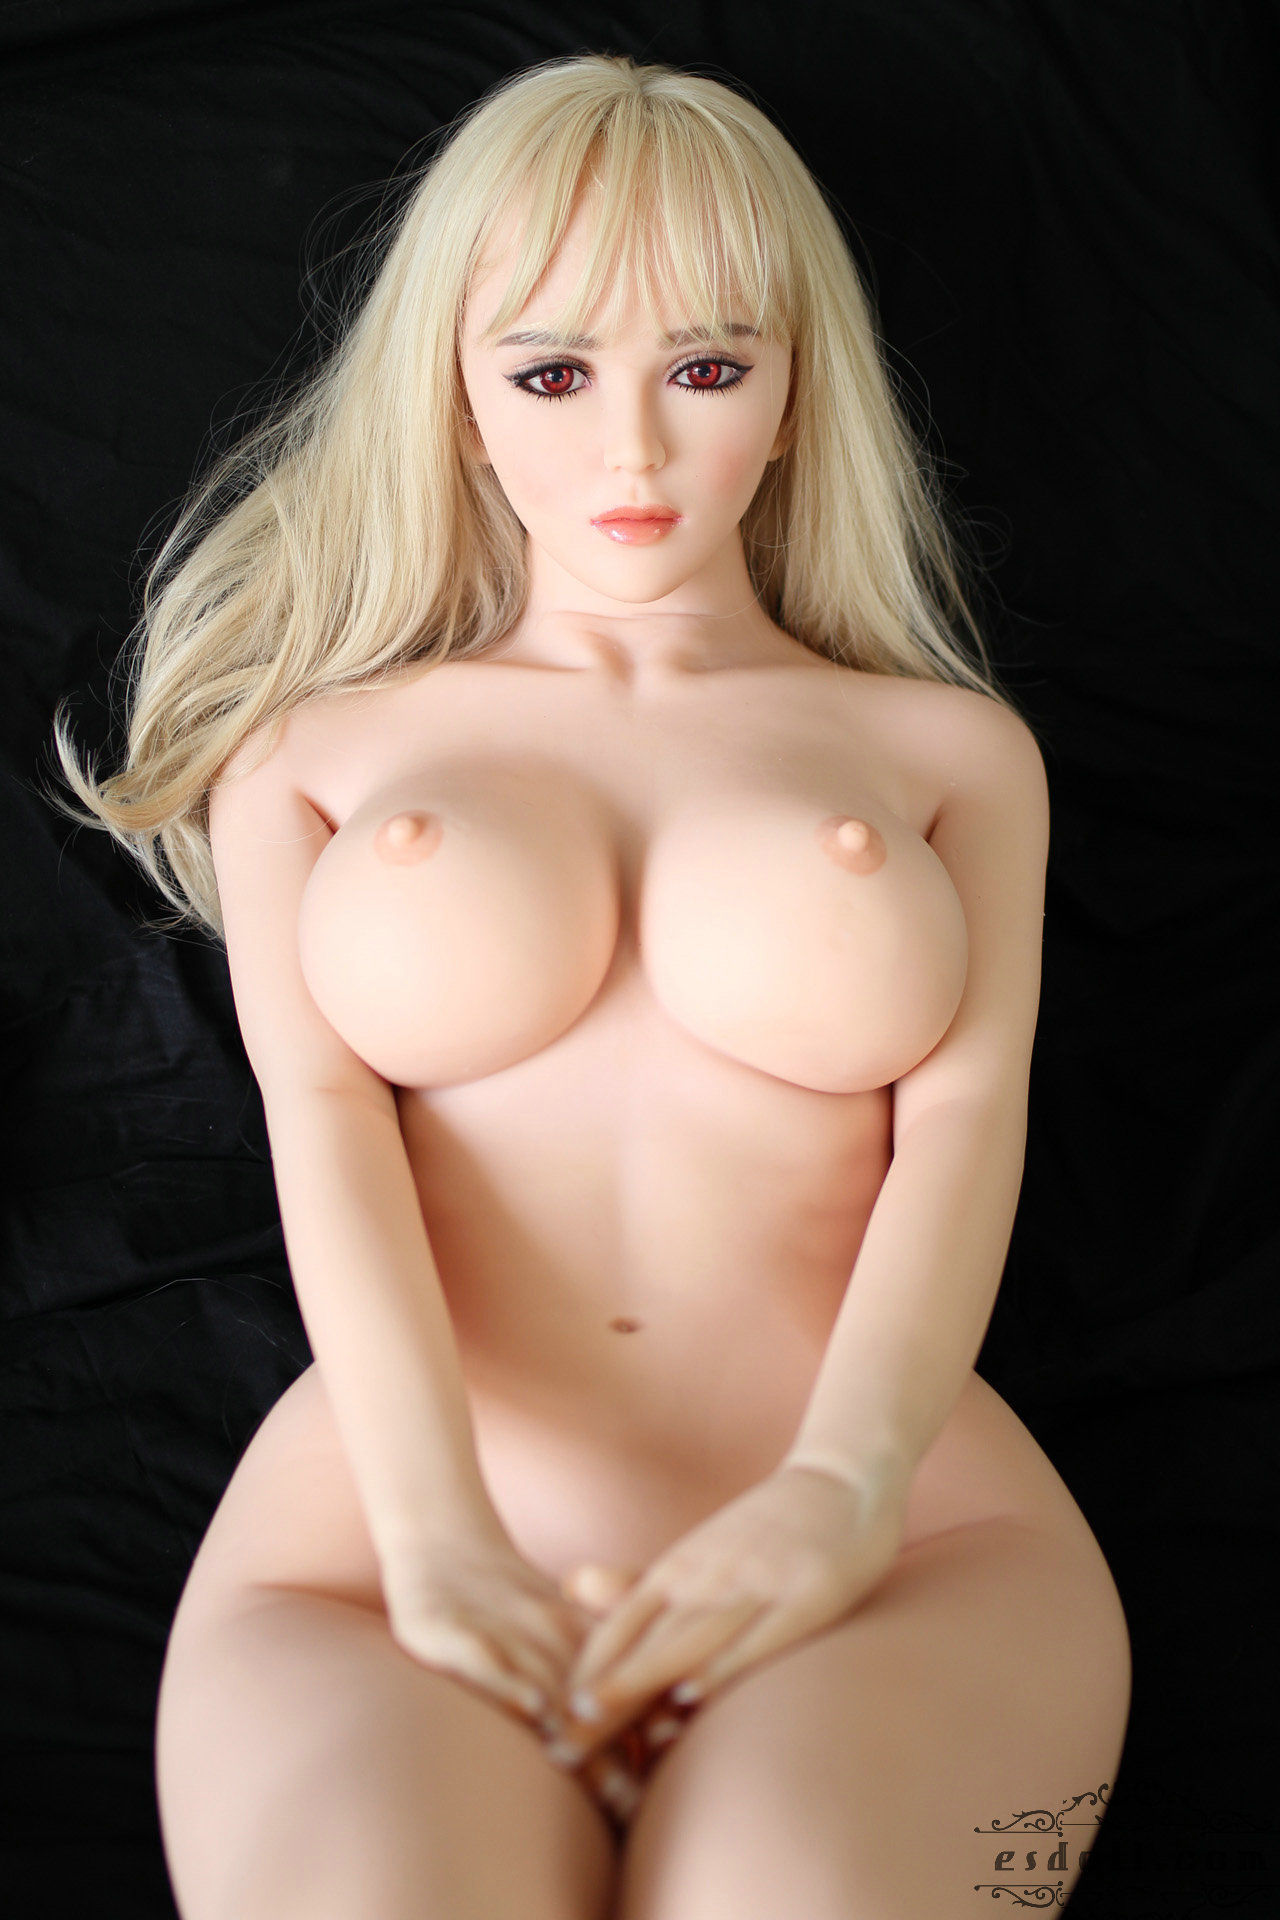 165cm 5.41ft Ivy sex doll - 37